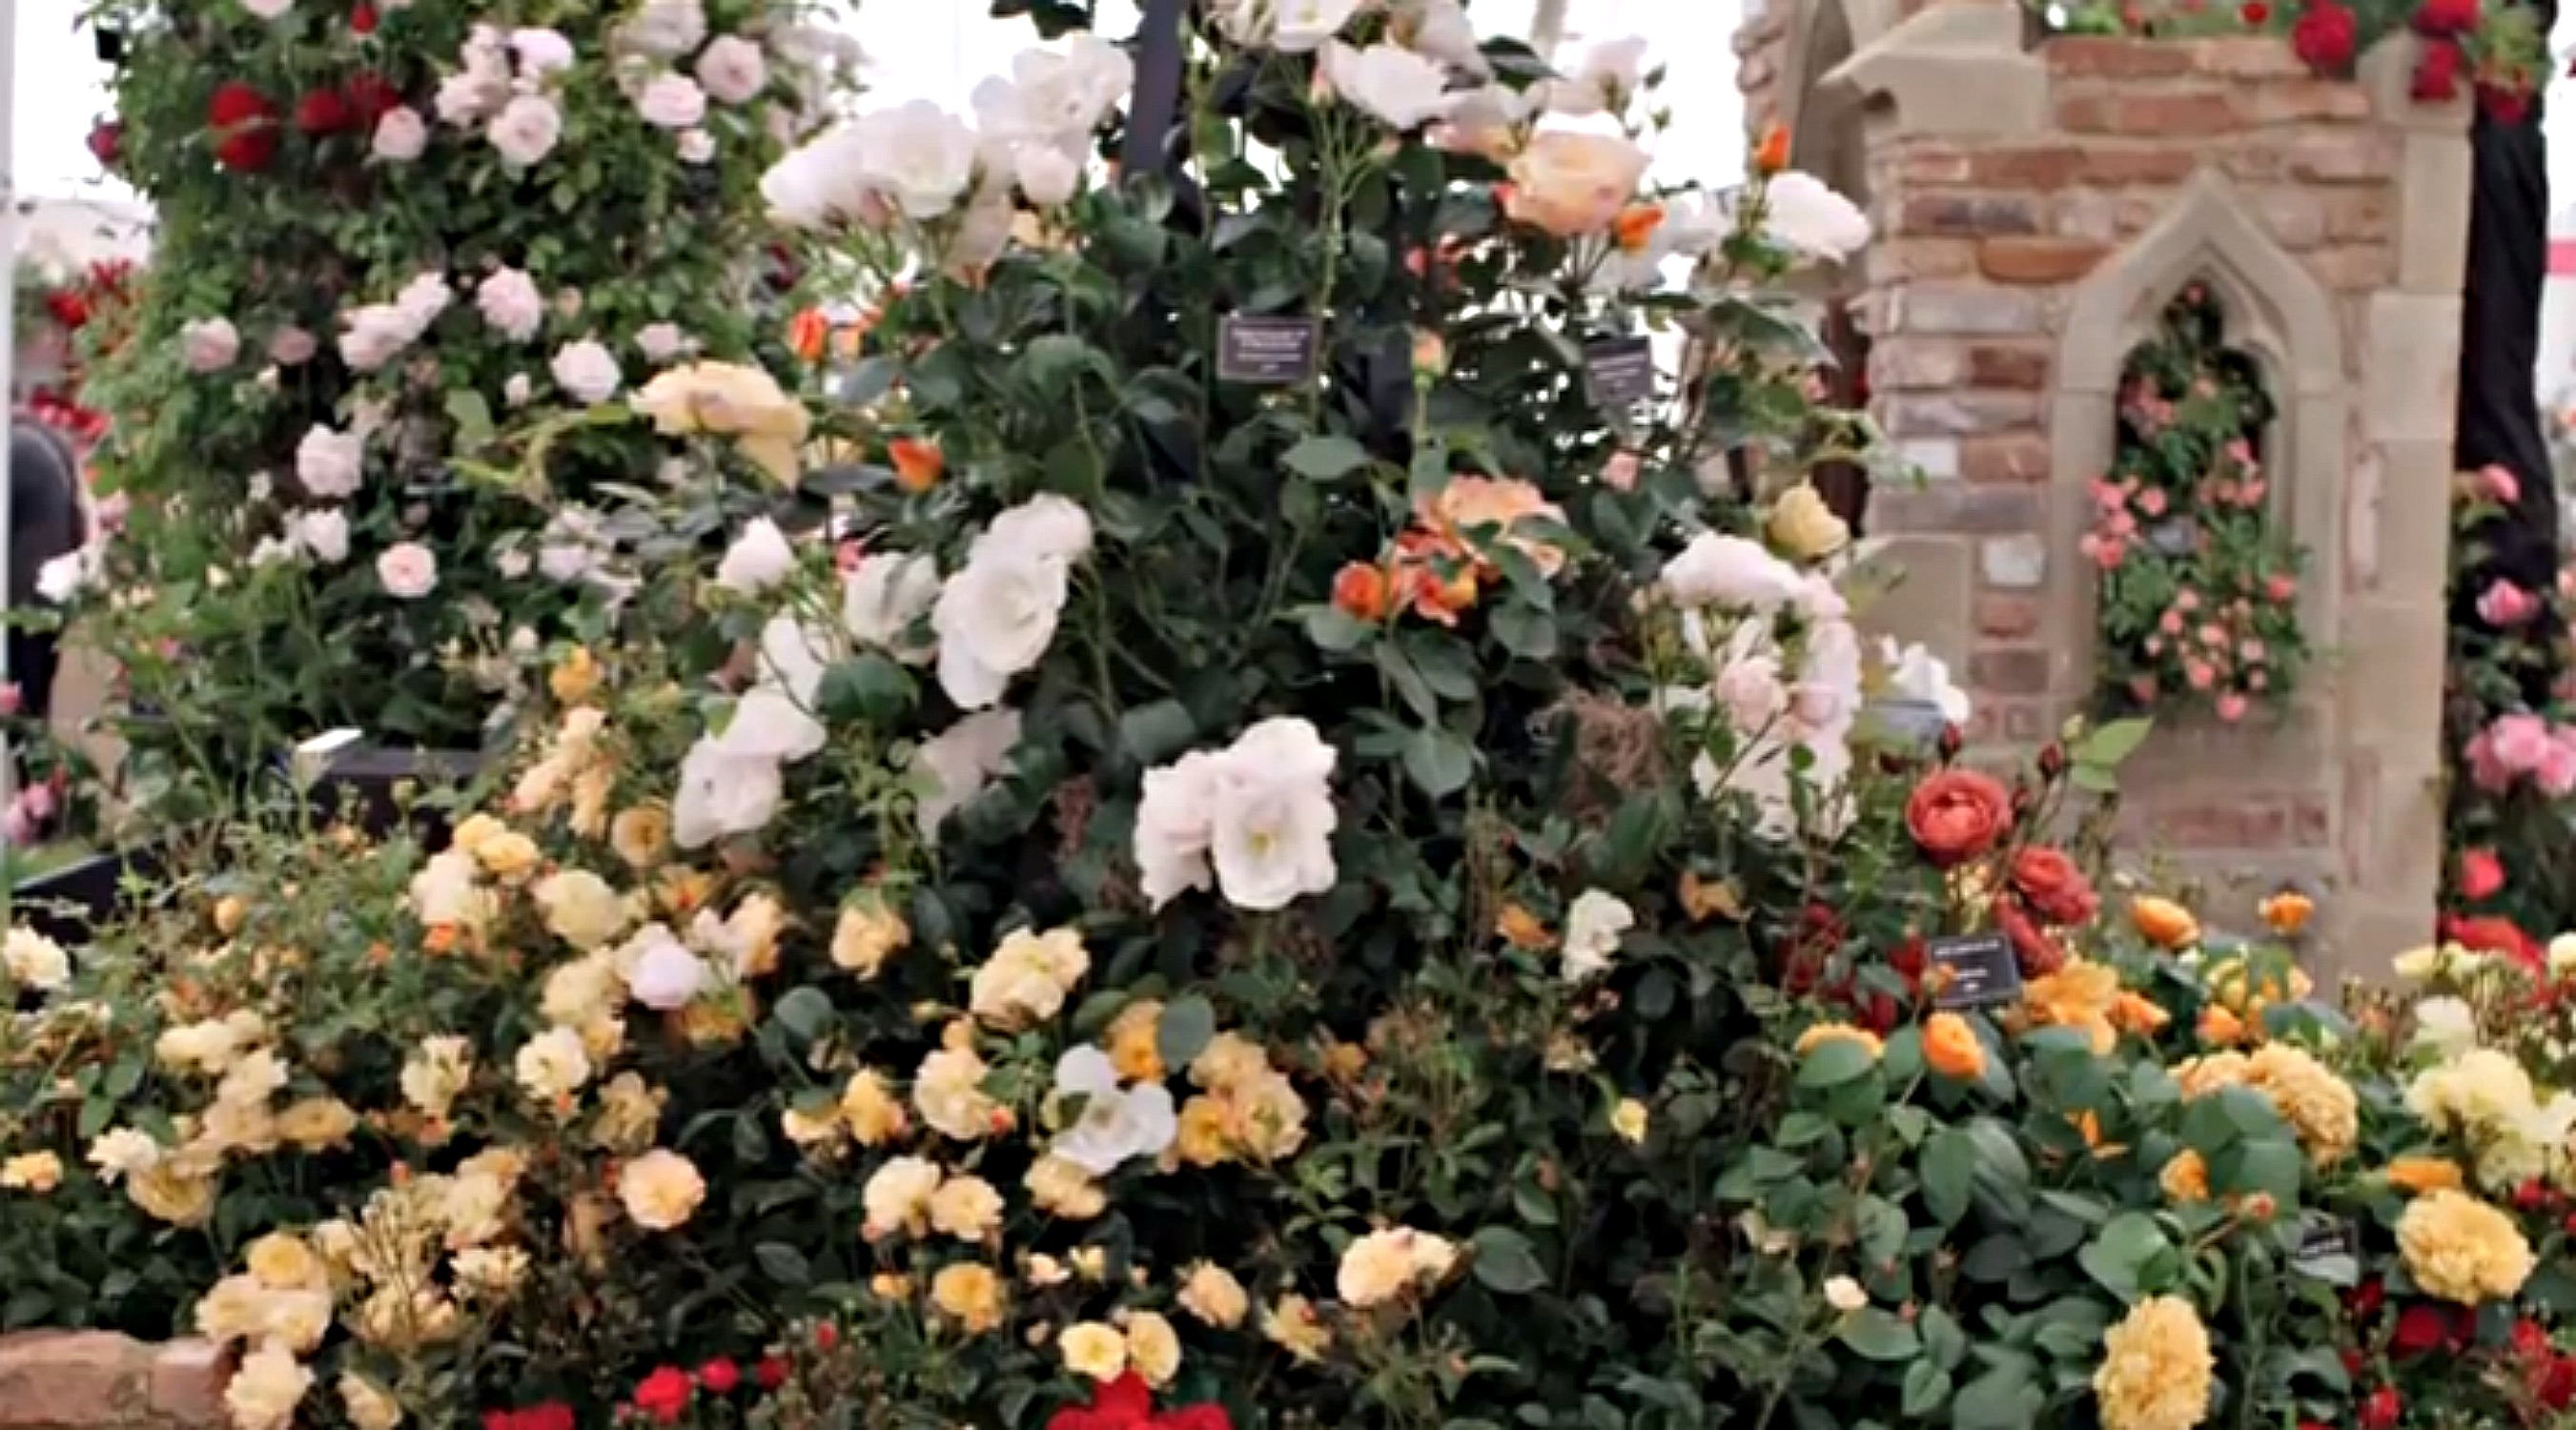 Festival of Roses – RHS Hampton Court Palace Flower Show